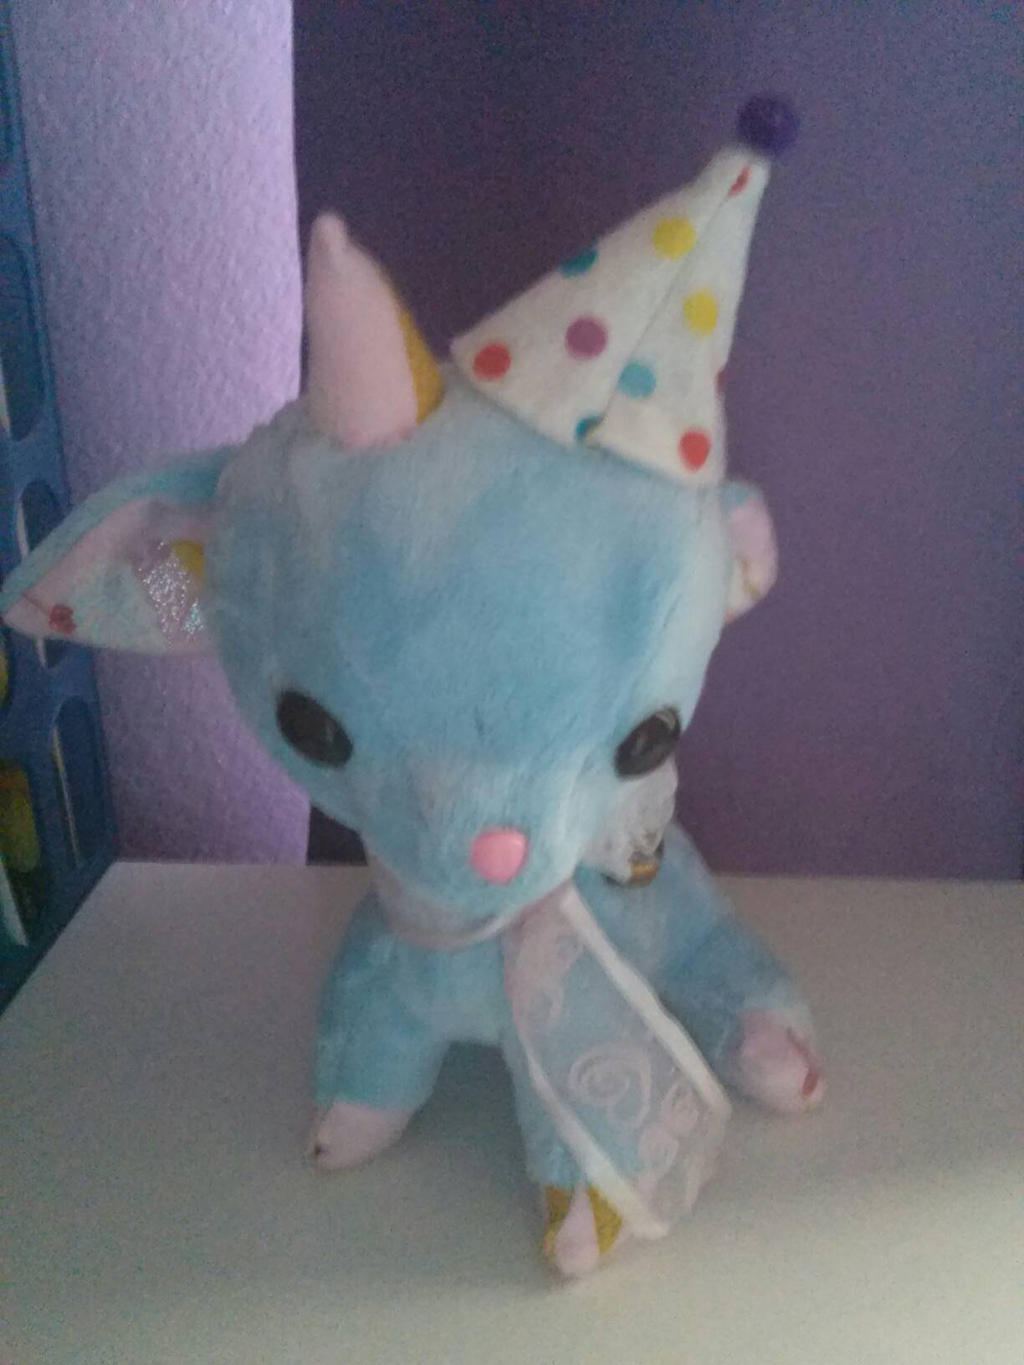 My 2nd plush by DreamNotePrincess